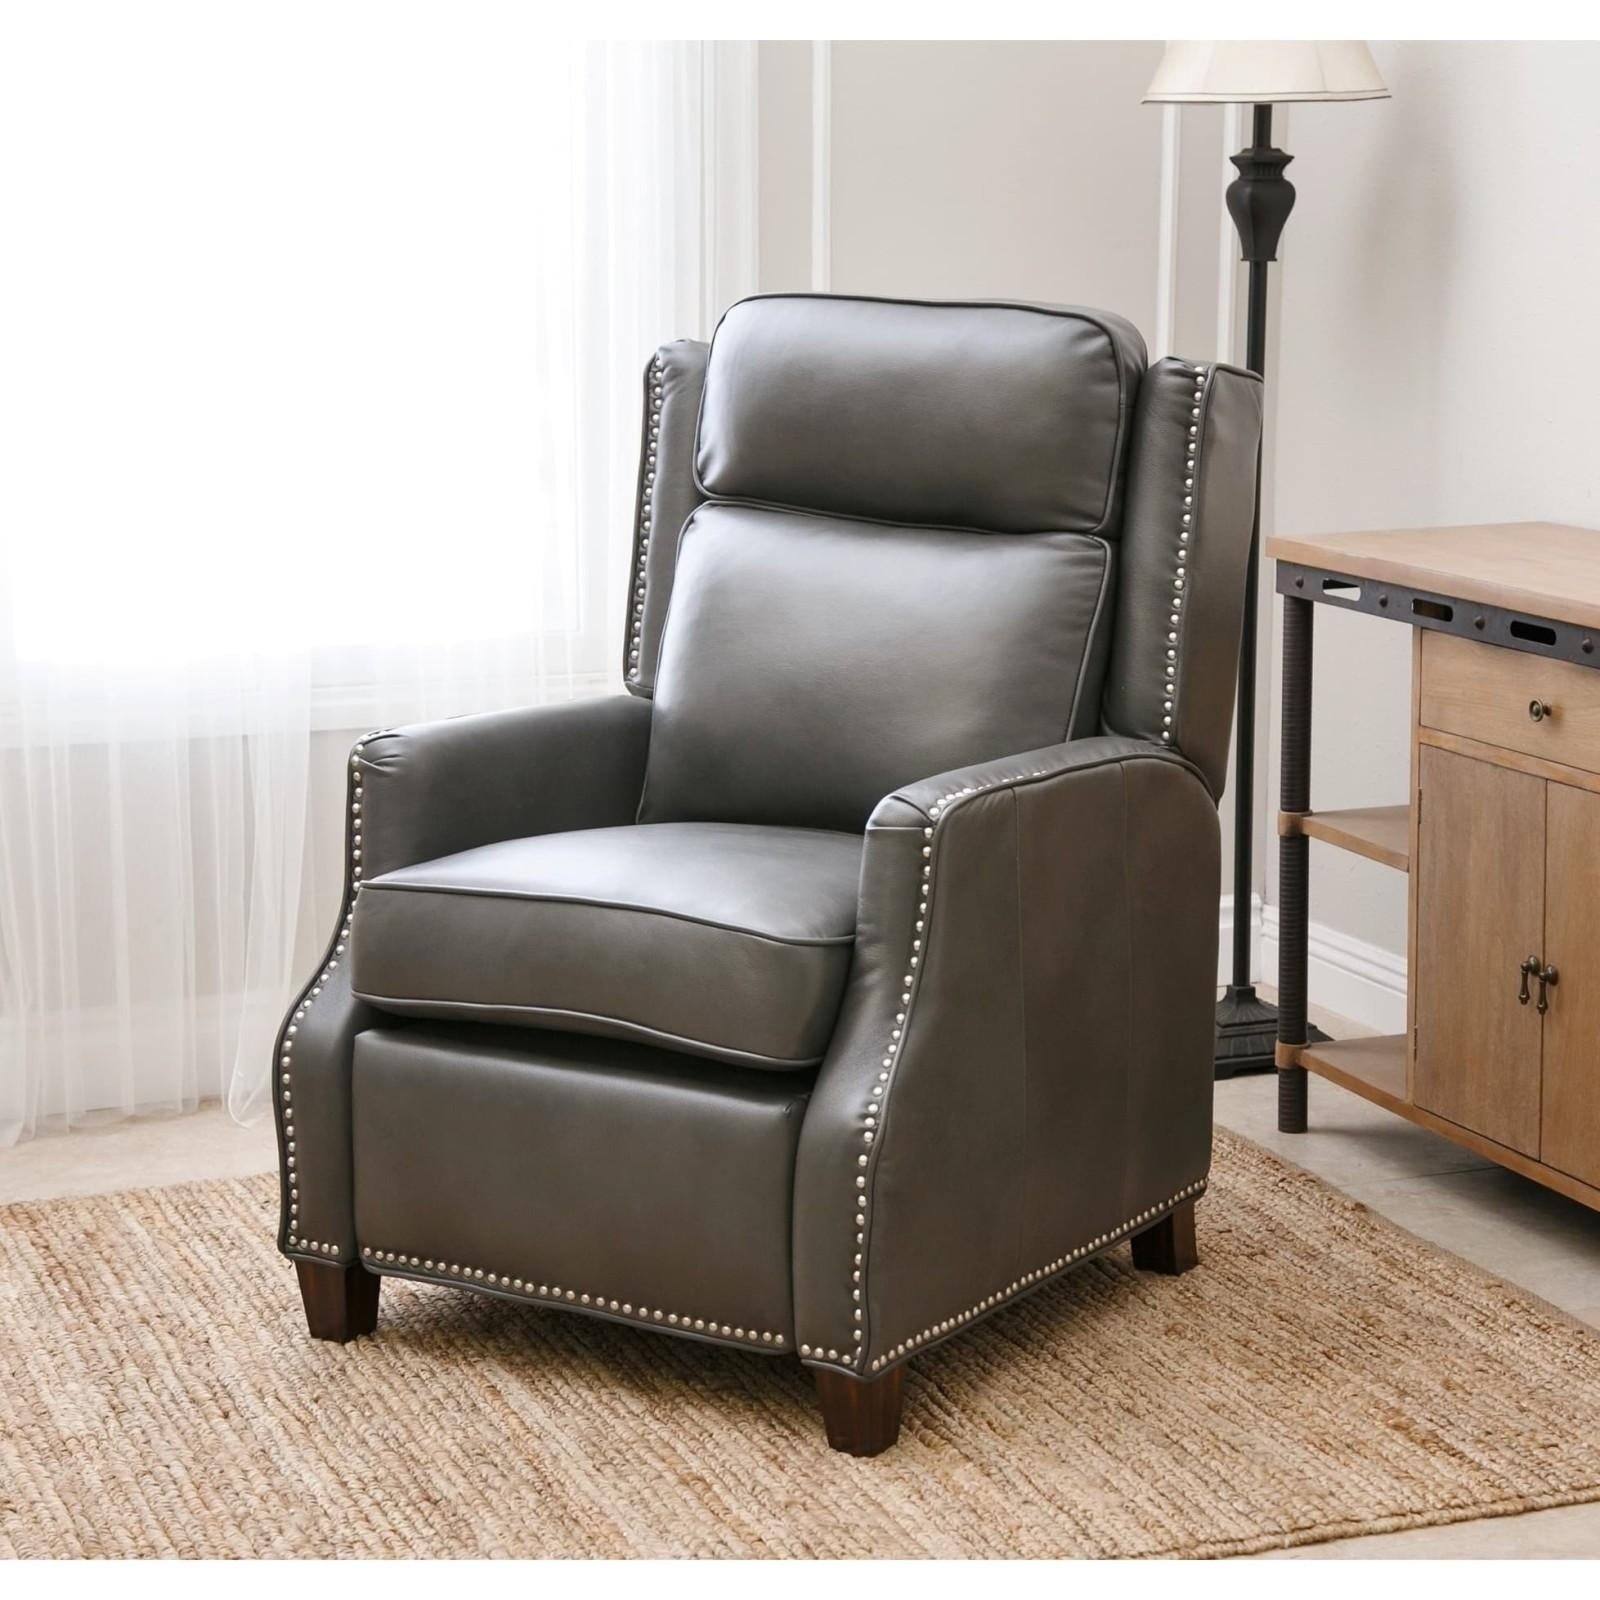 Abbyson Richfield Pushback Leather Recliner | Ebay Within Abbyson Recliners (Image 10 of 20)